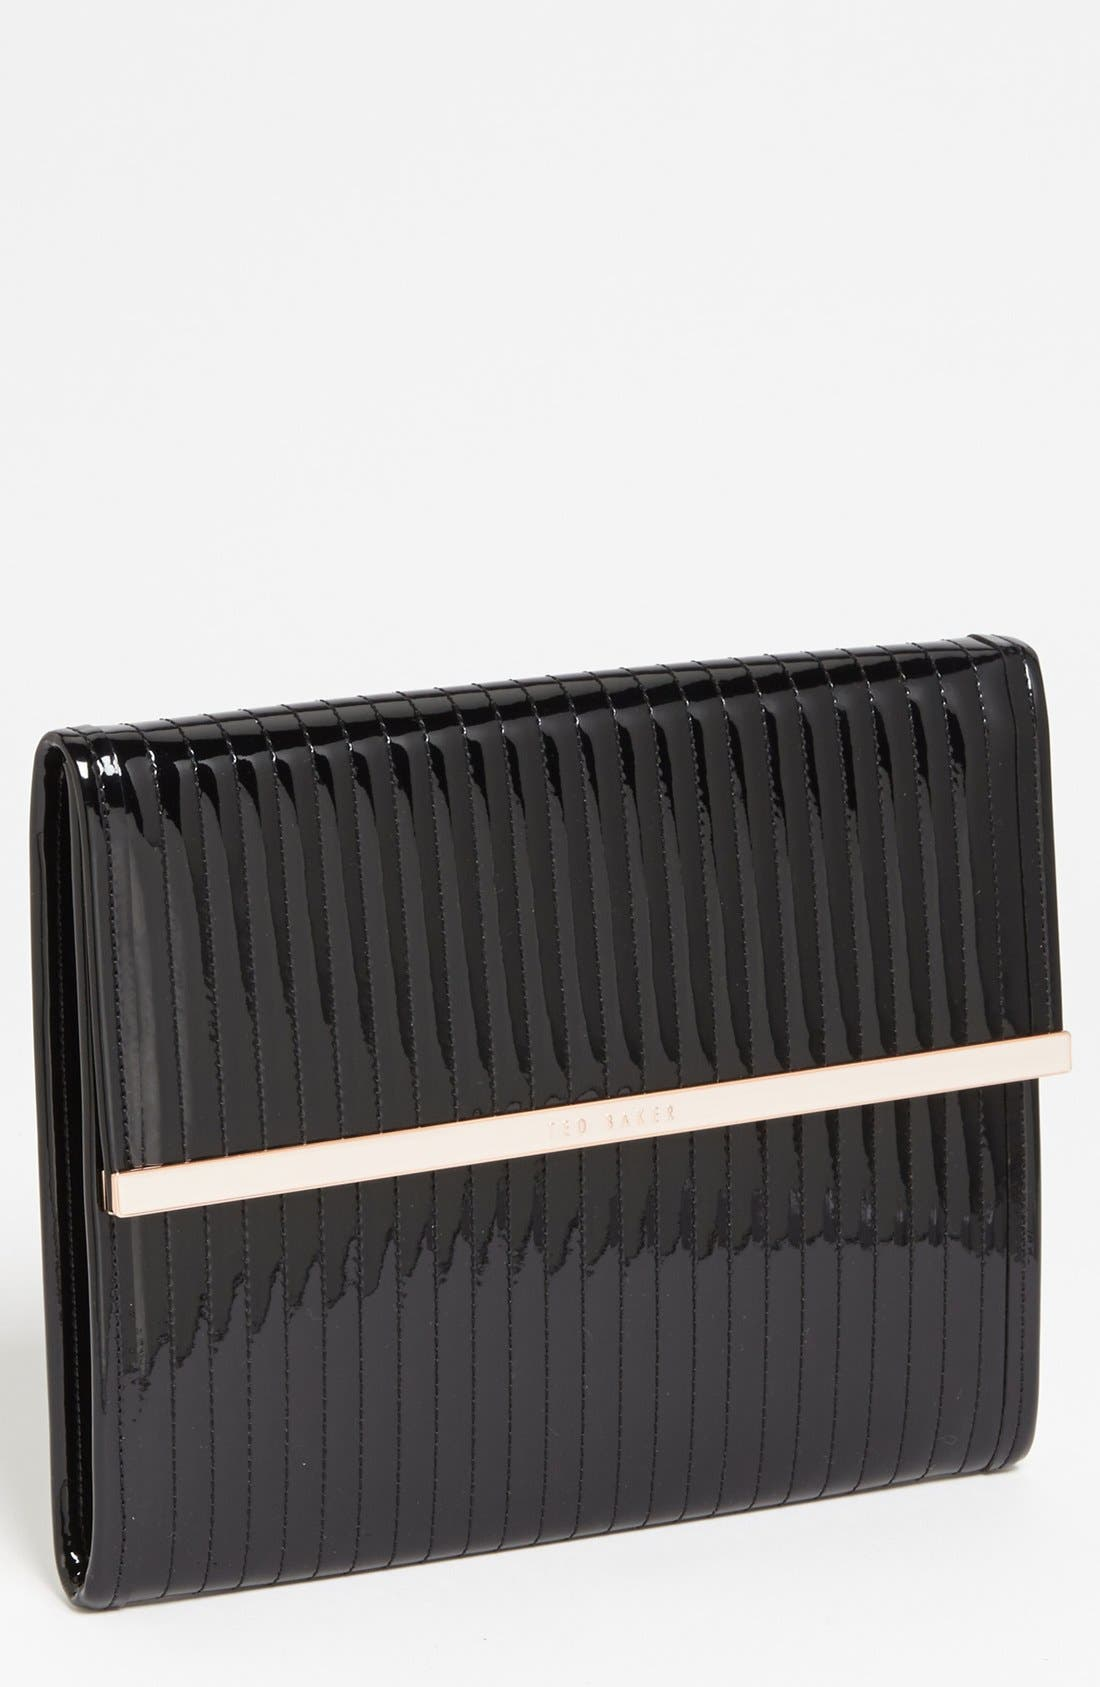 TED BAKER LONDON Quilted iPad Sleeve, Main, color, 001